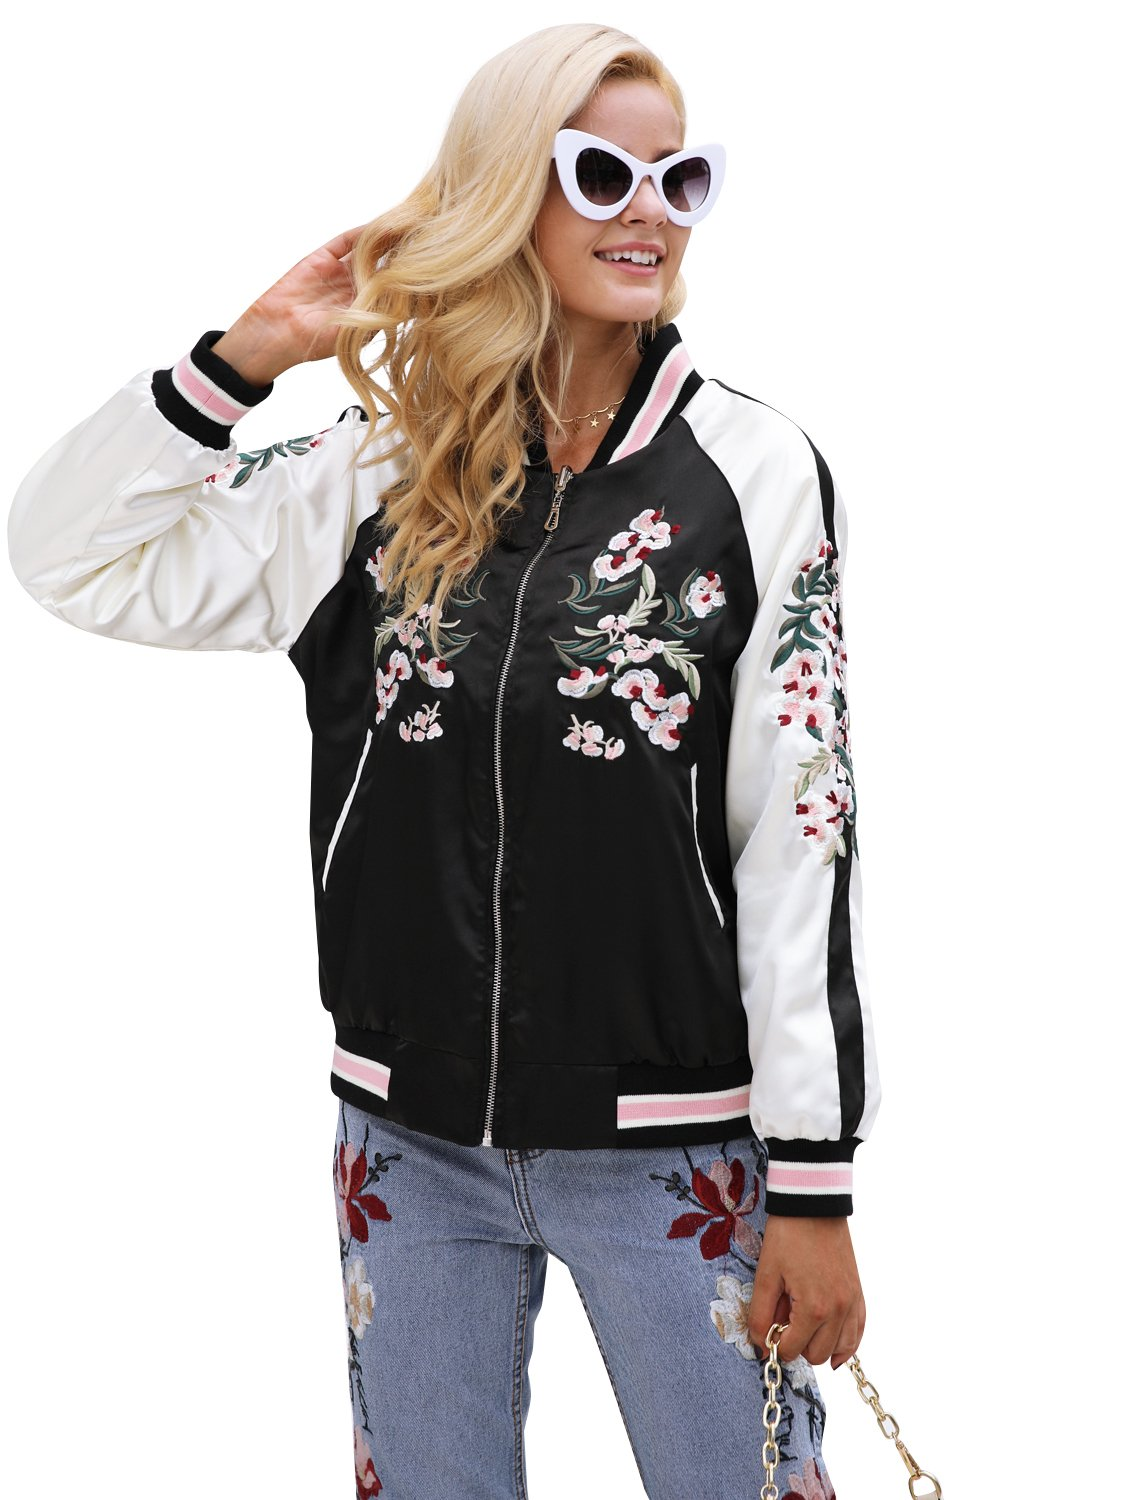 Simplee Women's Casual Floral Embroidery Reversible Satin Bomber Jacket OW550